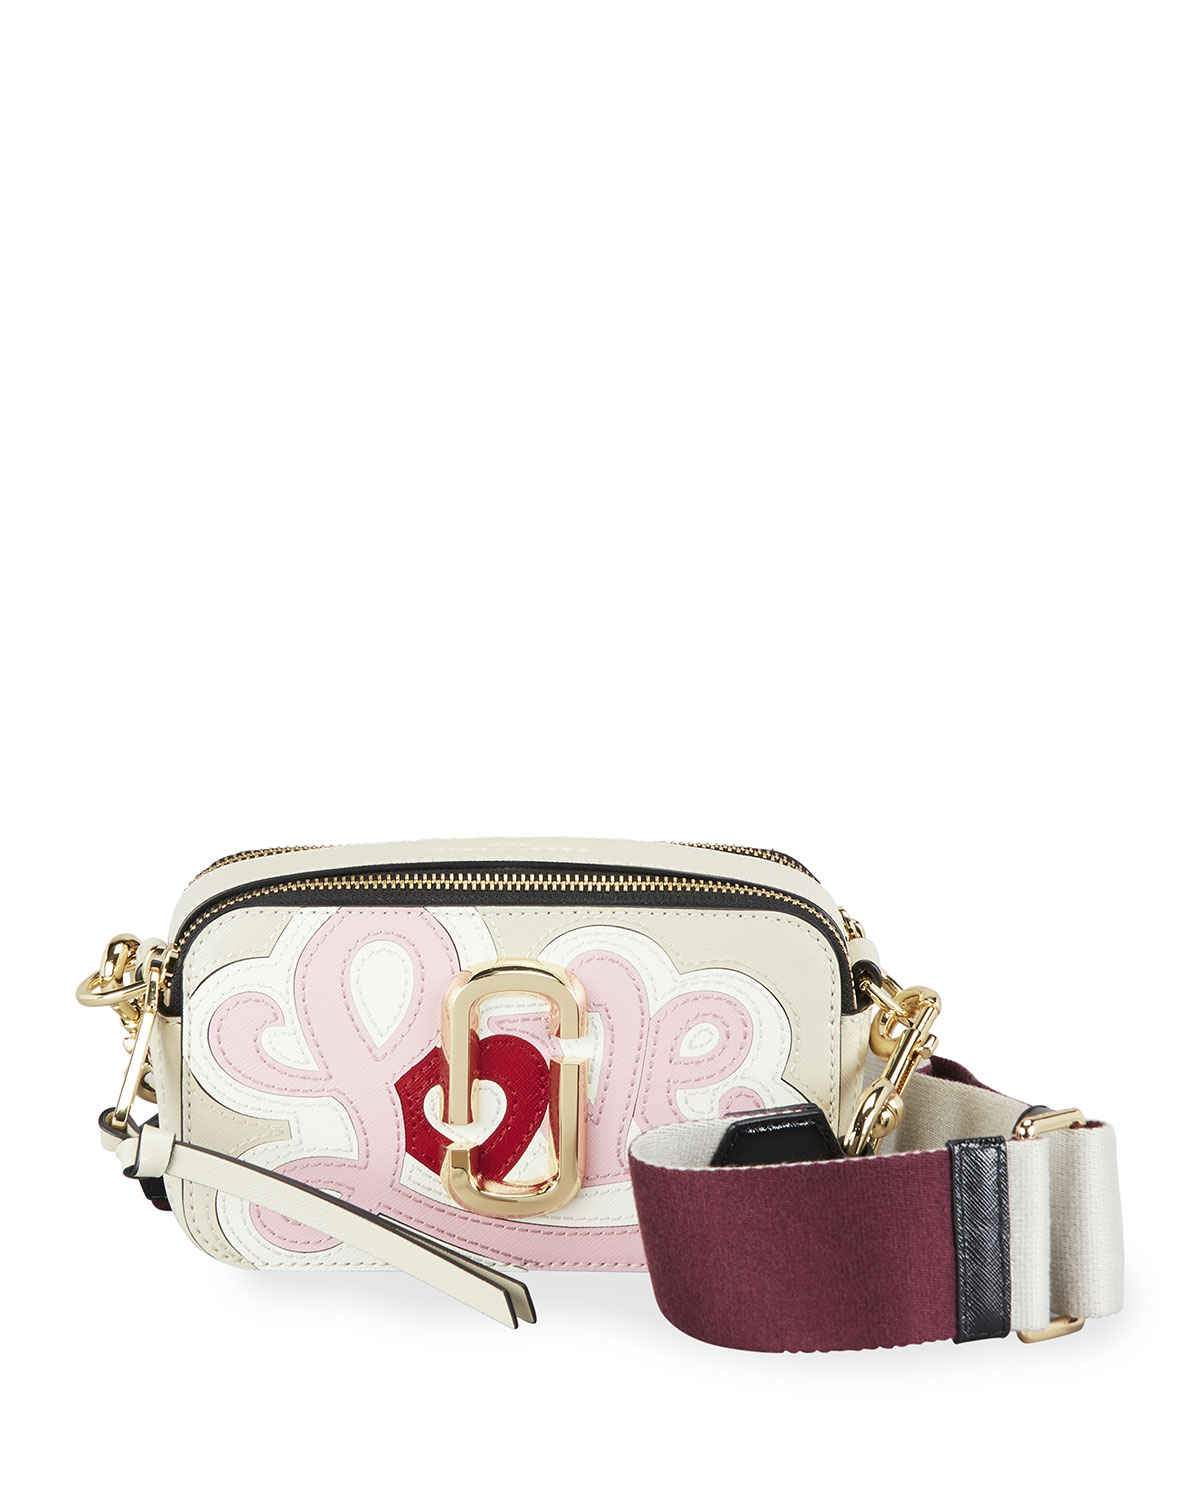 The Marc Jacobs Snapshot Printed Love Crossbody Bag